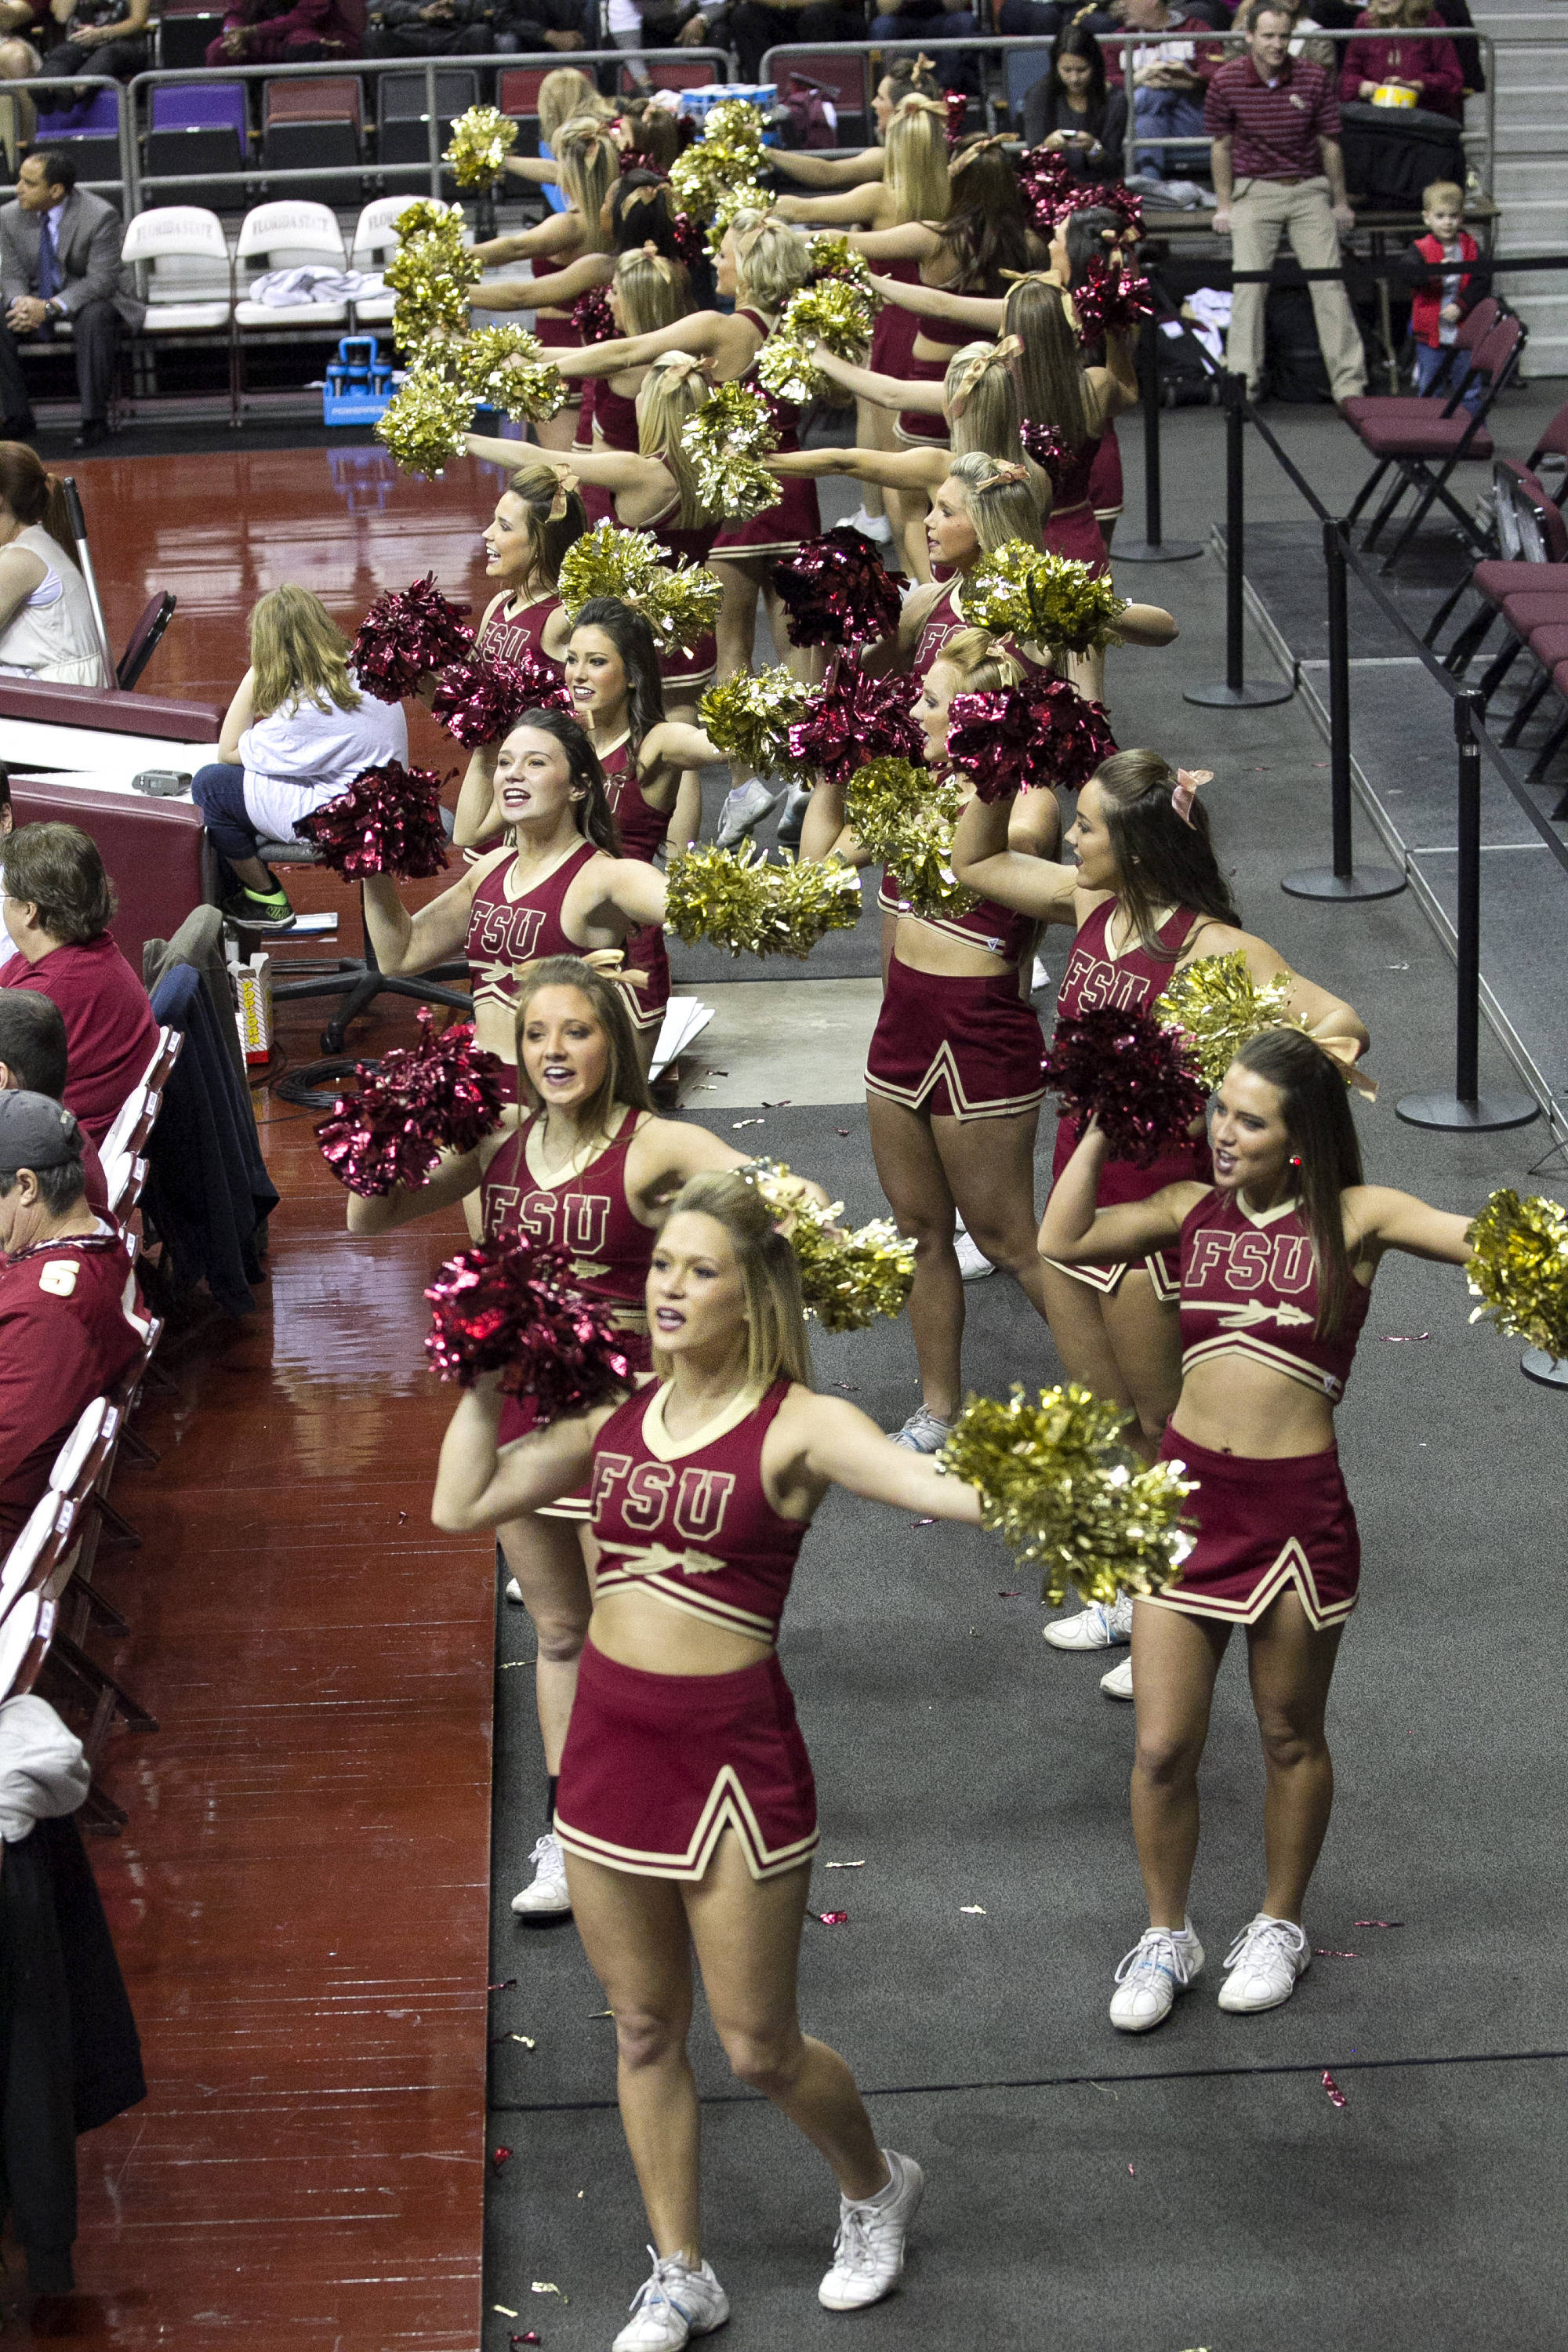 FSU cheerleaders, FSU vs UT Martin, 12-28-13,  (Photo by Steve Musco)